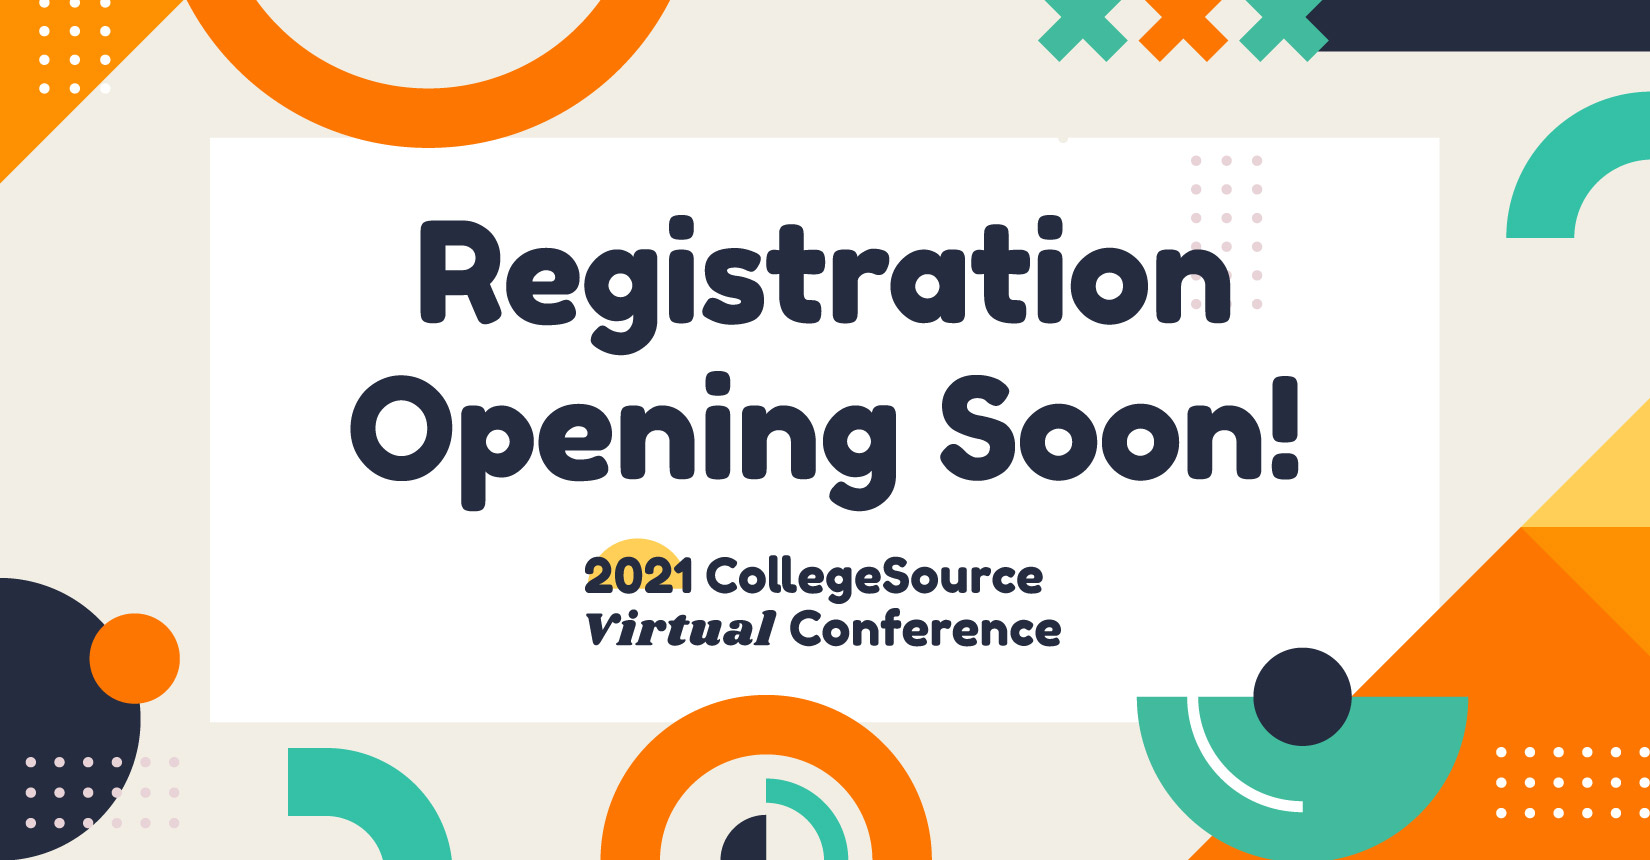 2021-CollegeSource-Virtual-Conference-Banner-Registration-Opening-Soon